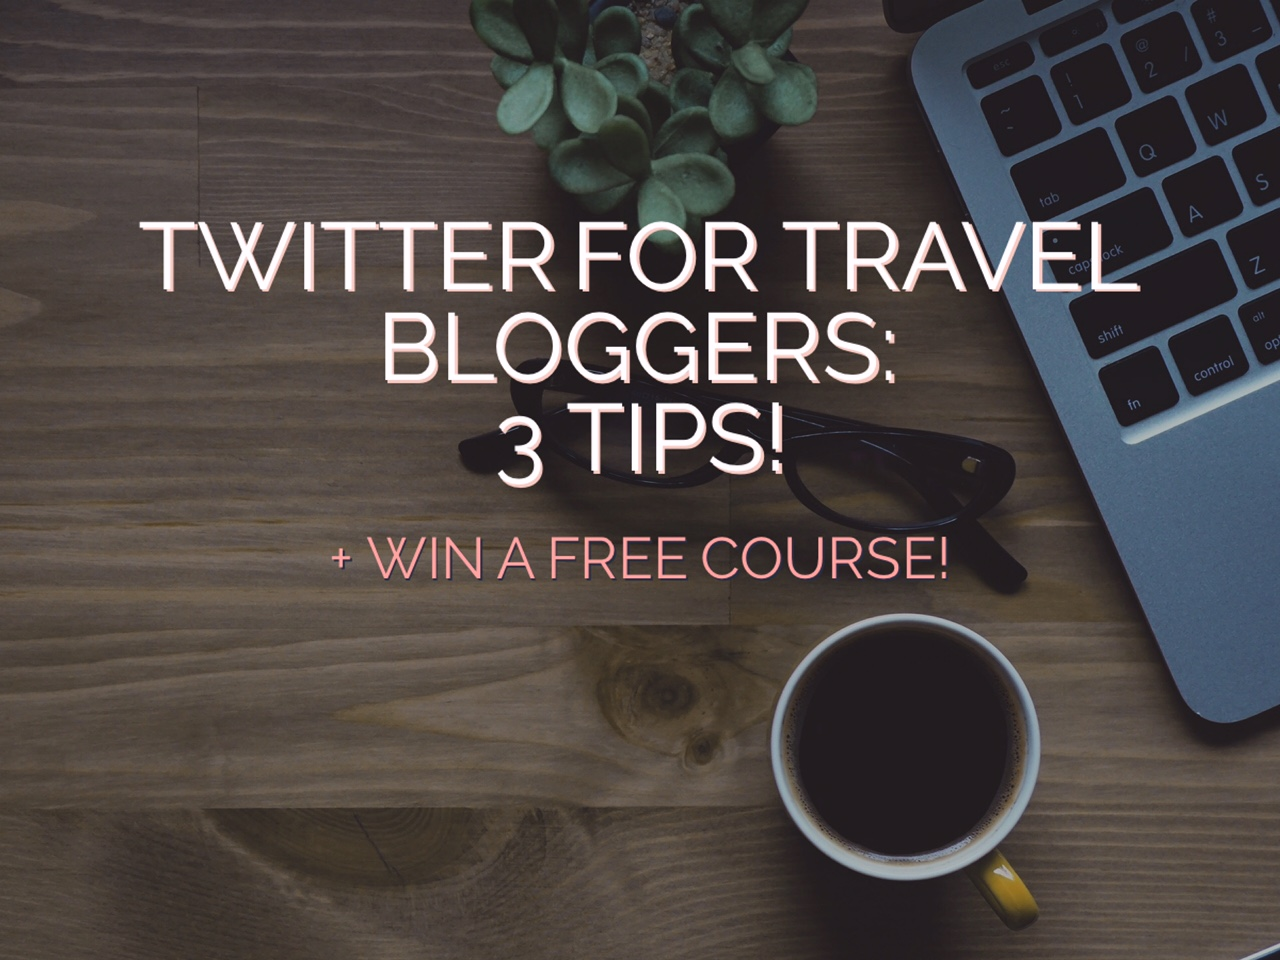 Twitter for Travel Bloggers: 3 Tips + Giveaway